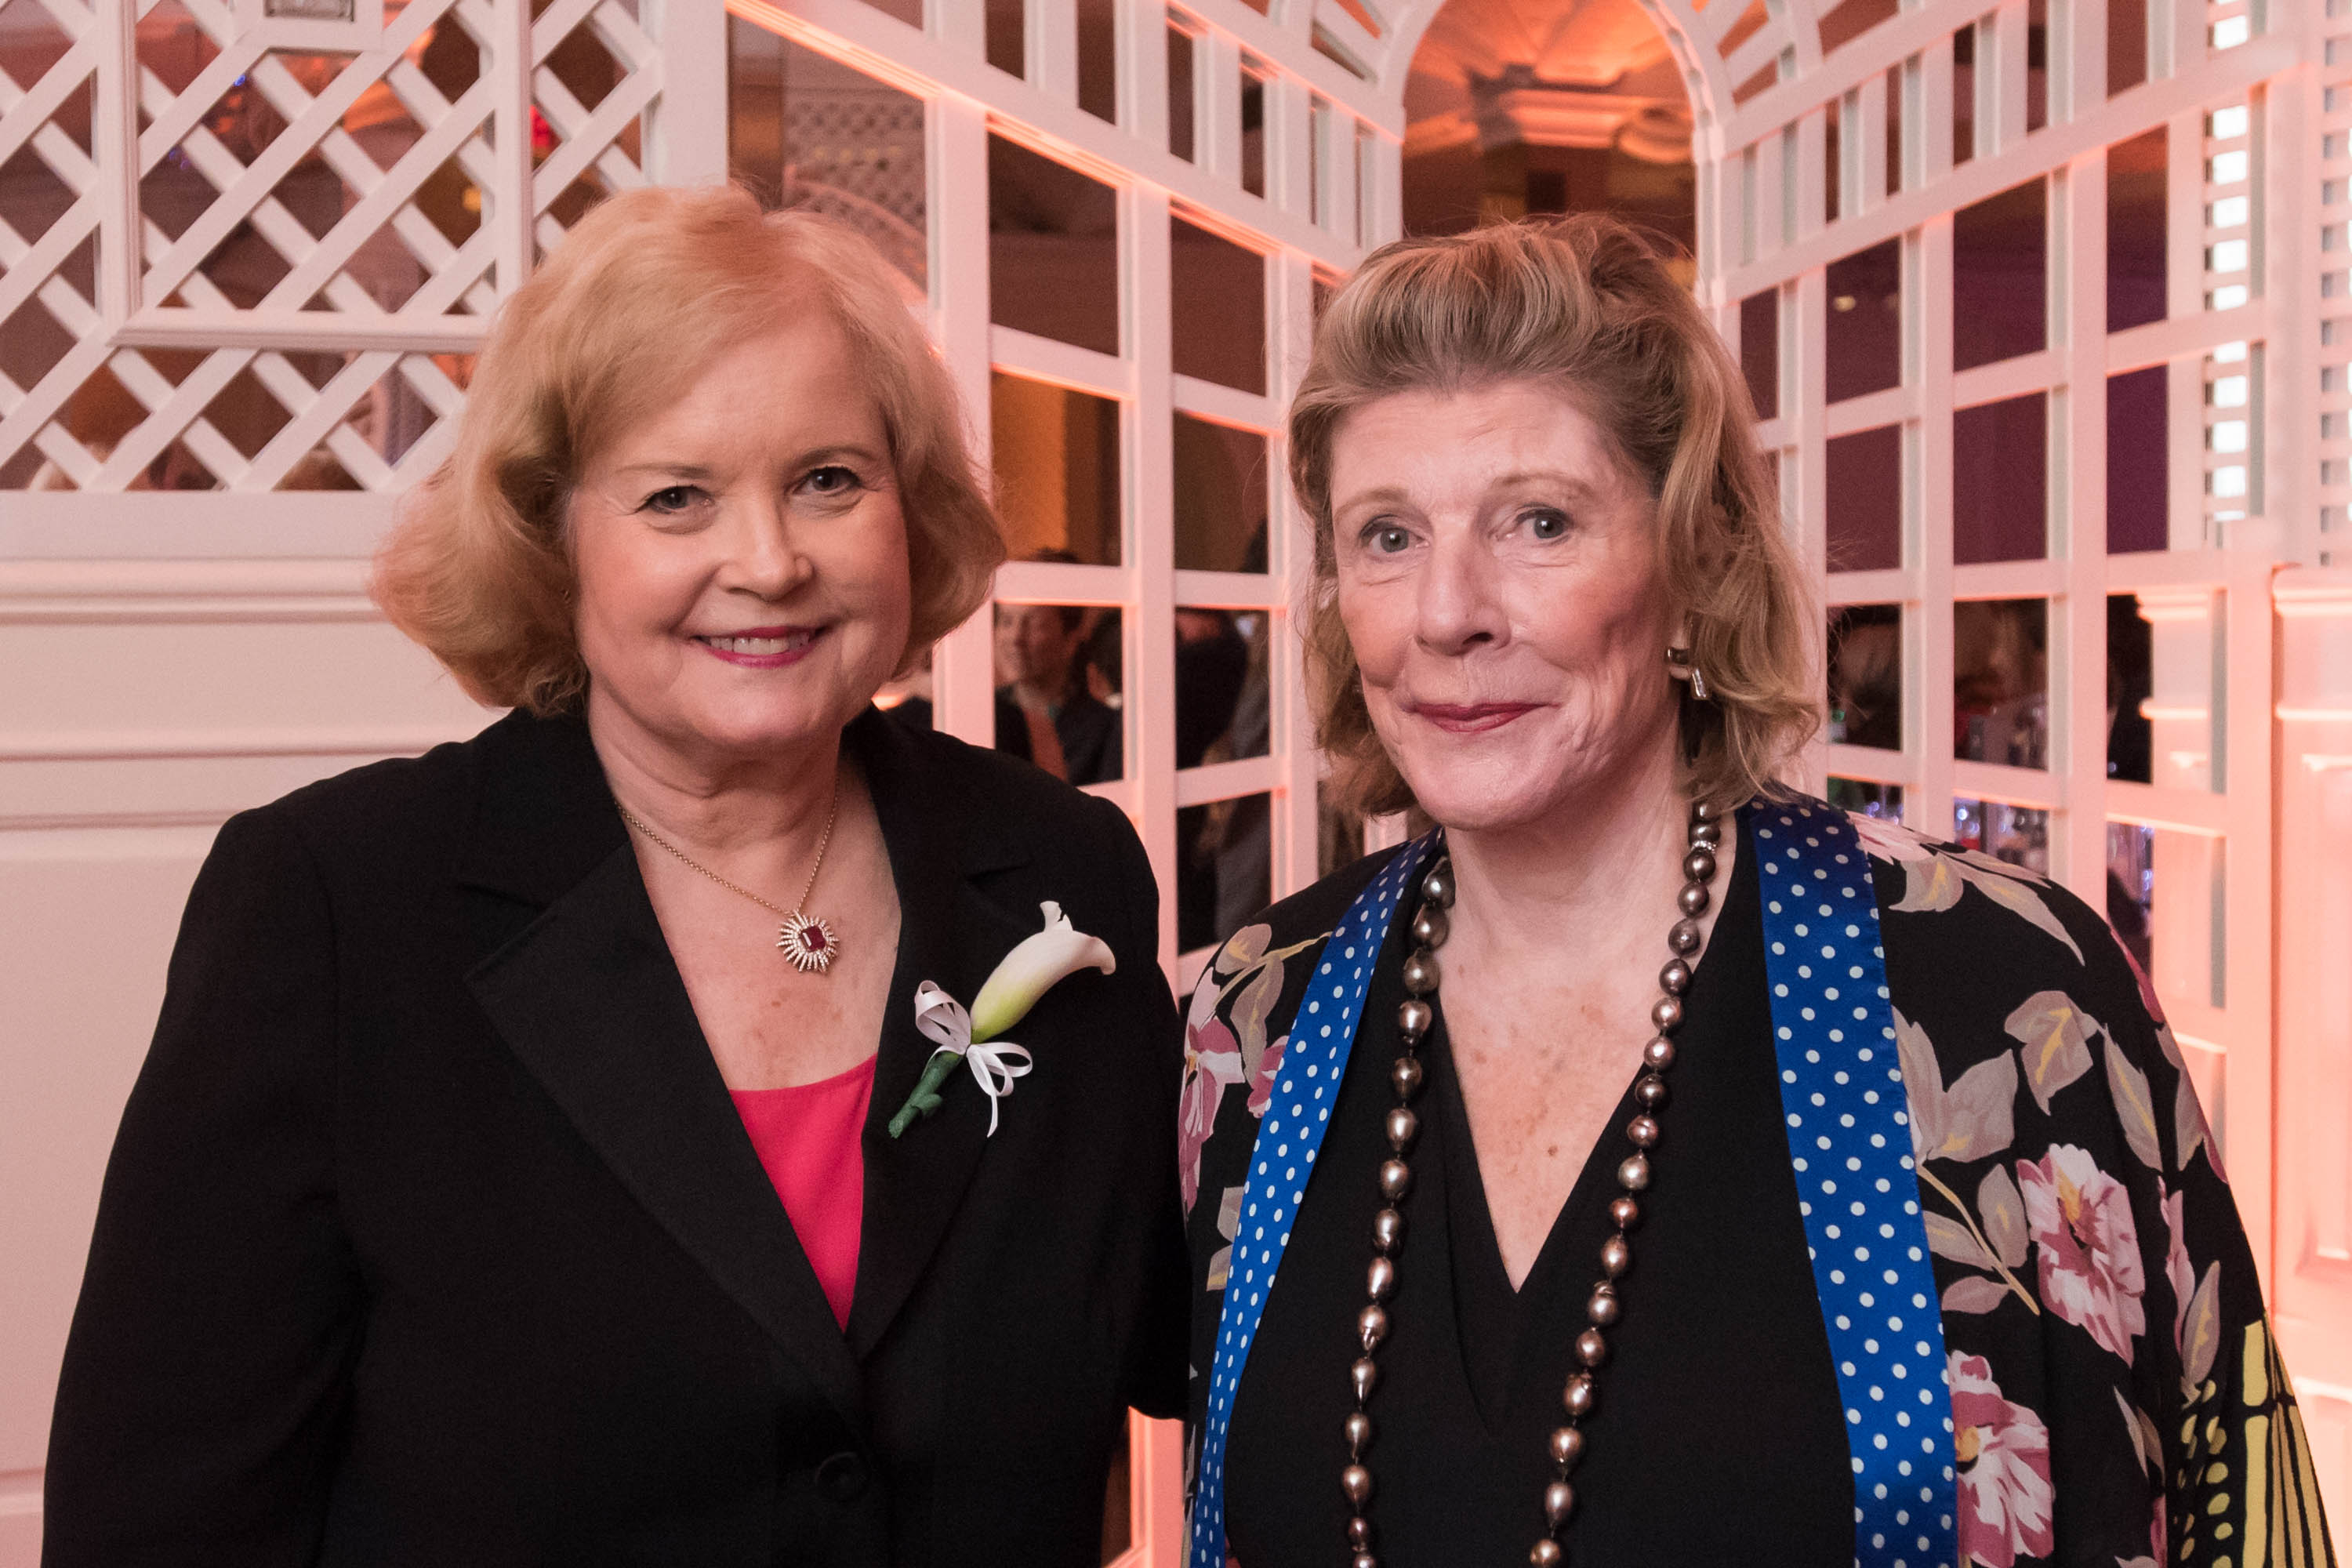 Photograph of Sharon Percy Rockefeller and Agnes Gund